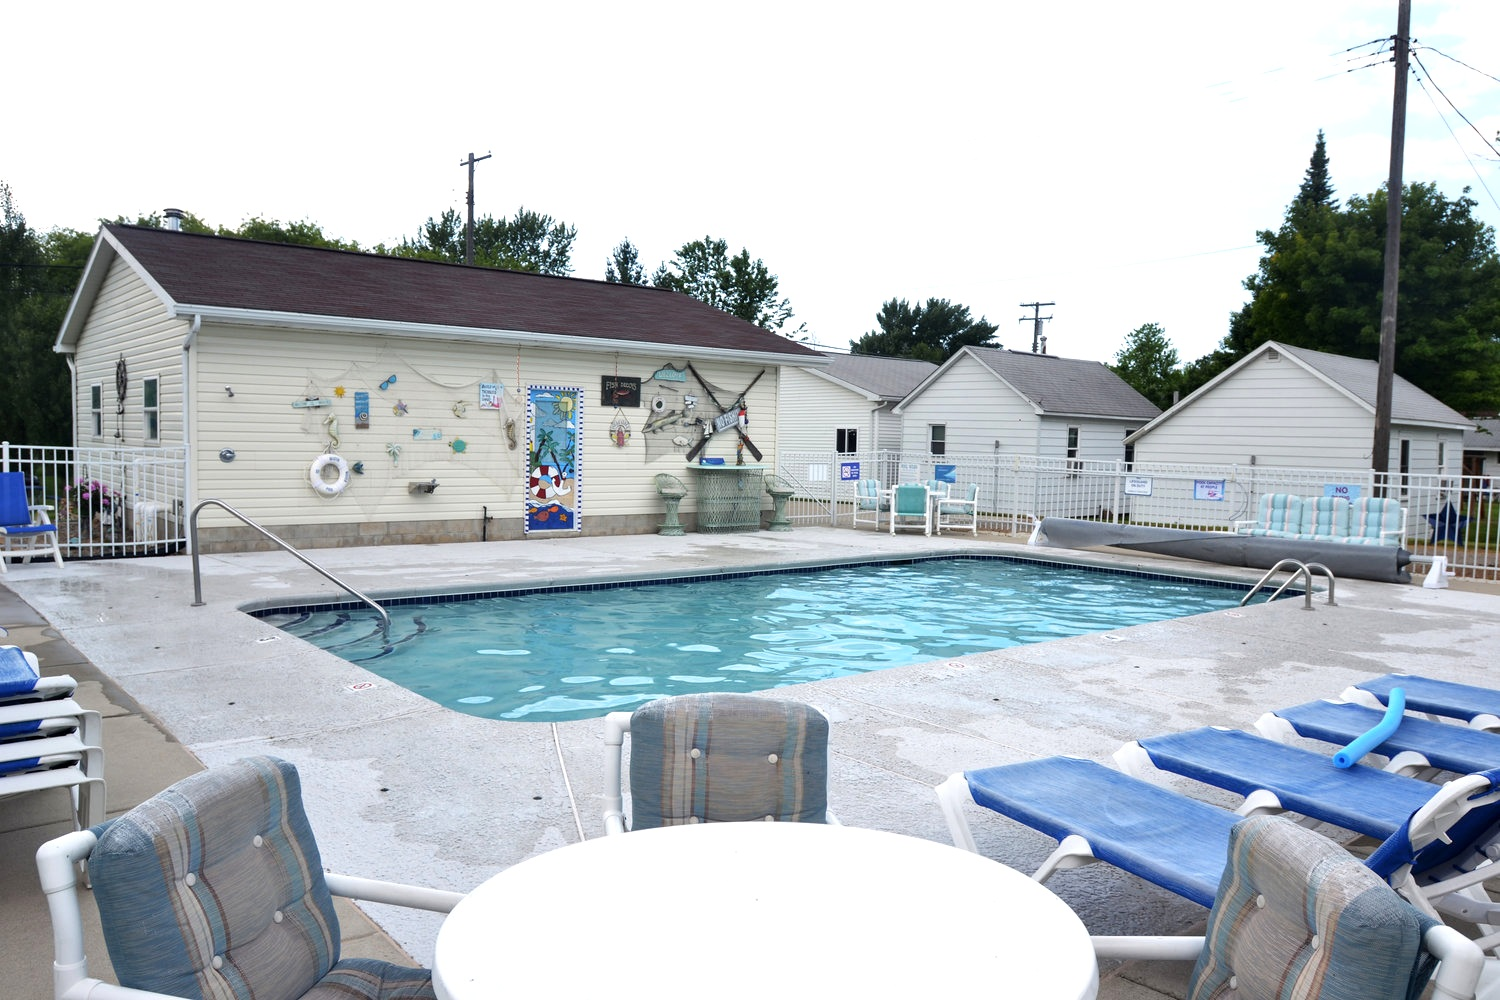 Blue Spruce Motel & Cabins - Close enough to the hustle and bustle of downtown Port Austin yet far enough away to relax and unwind.